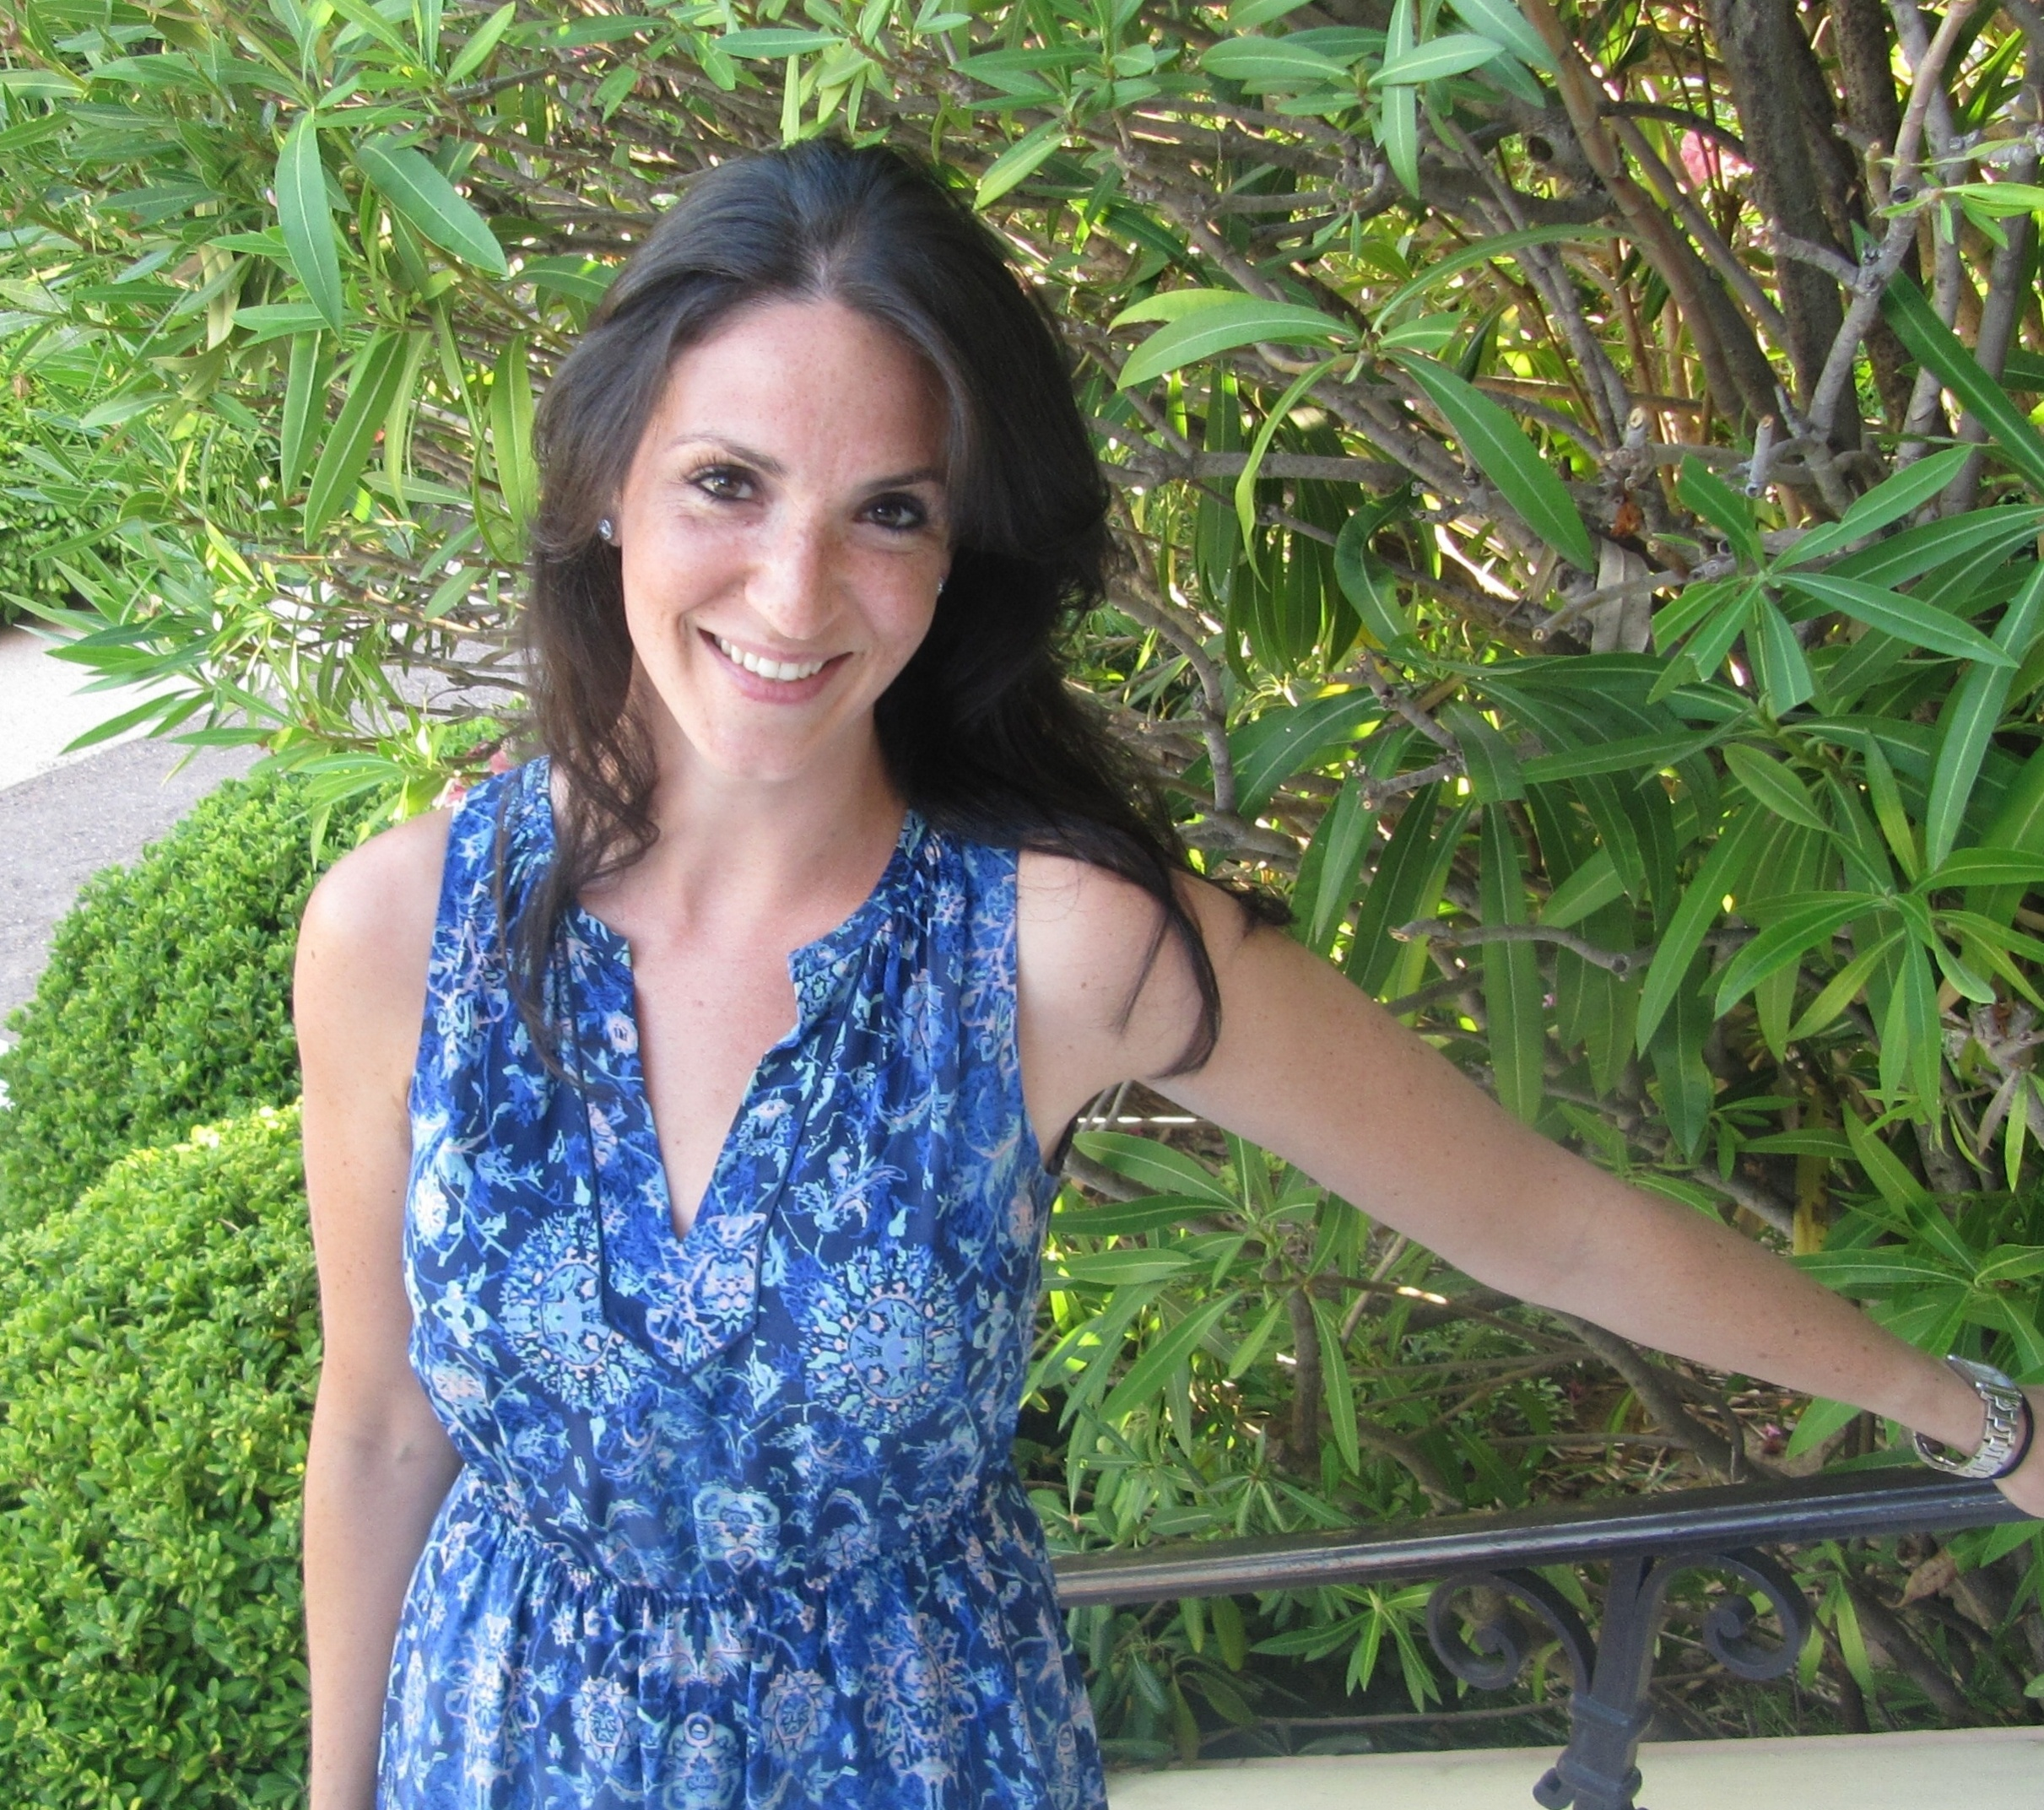 Rebecca Metzger-blog author and executive function coach for Beyond BookSmart